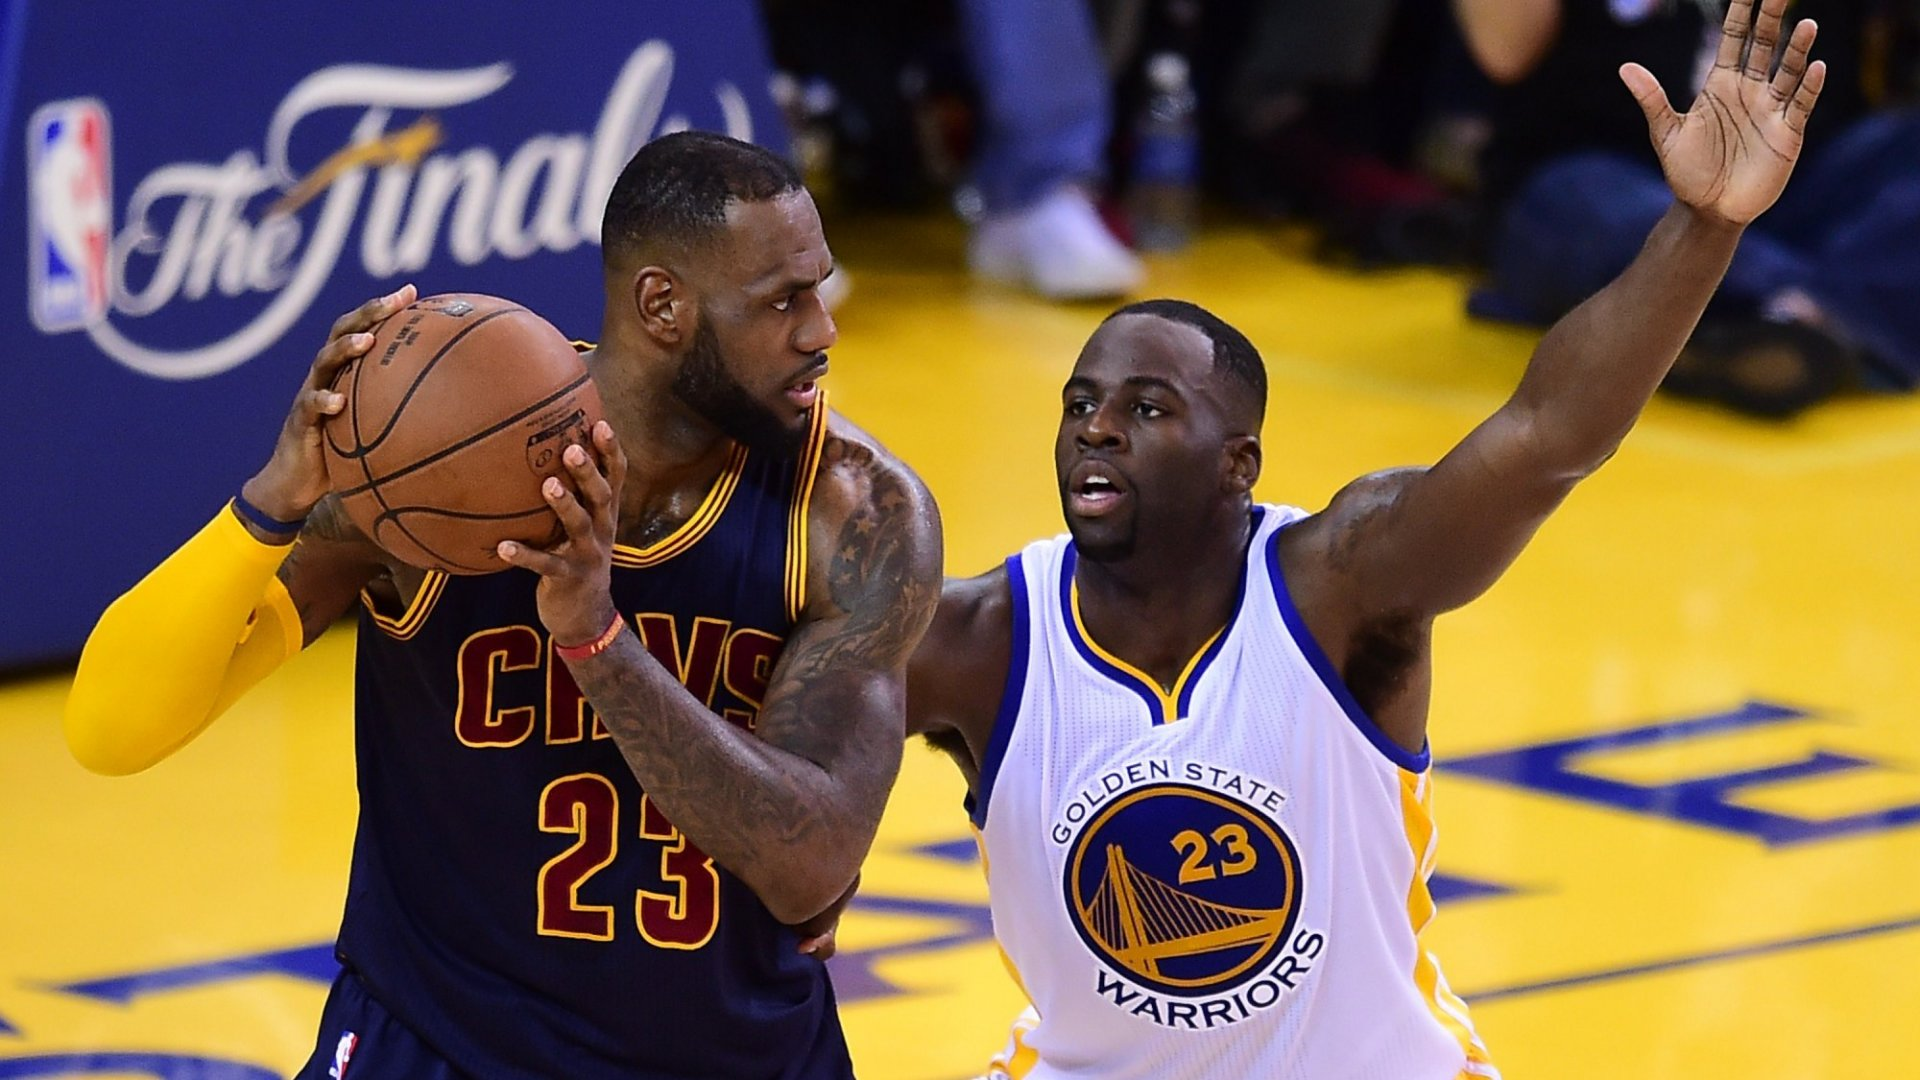 NBA Finals 2016: How LeBron James and Draymond Green Taught Us All a Major Lesson